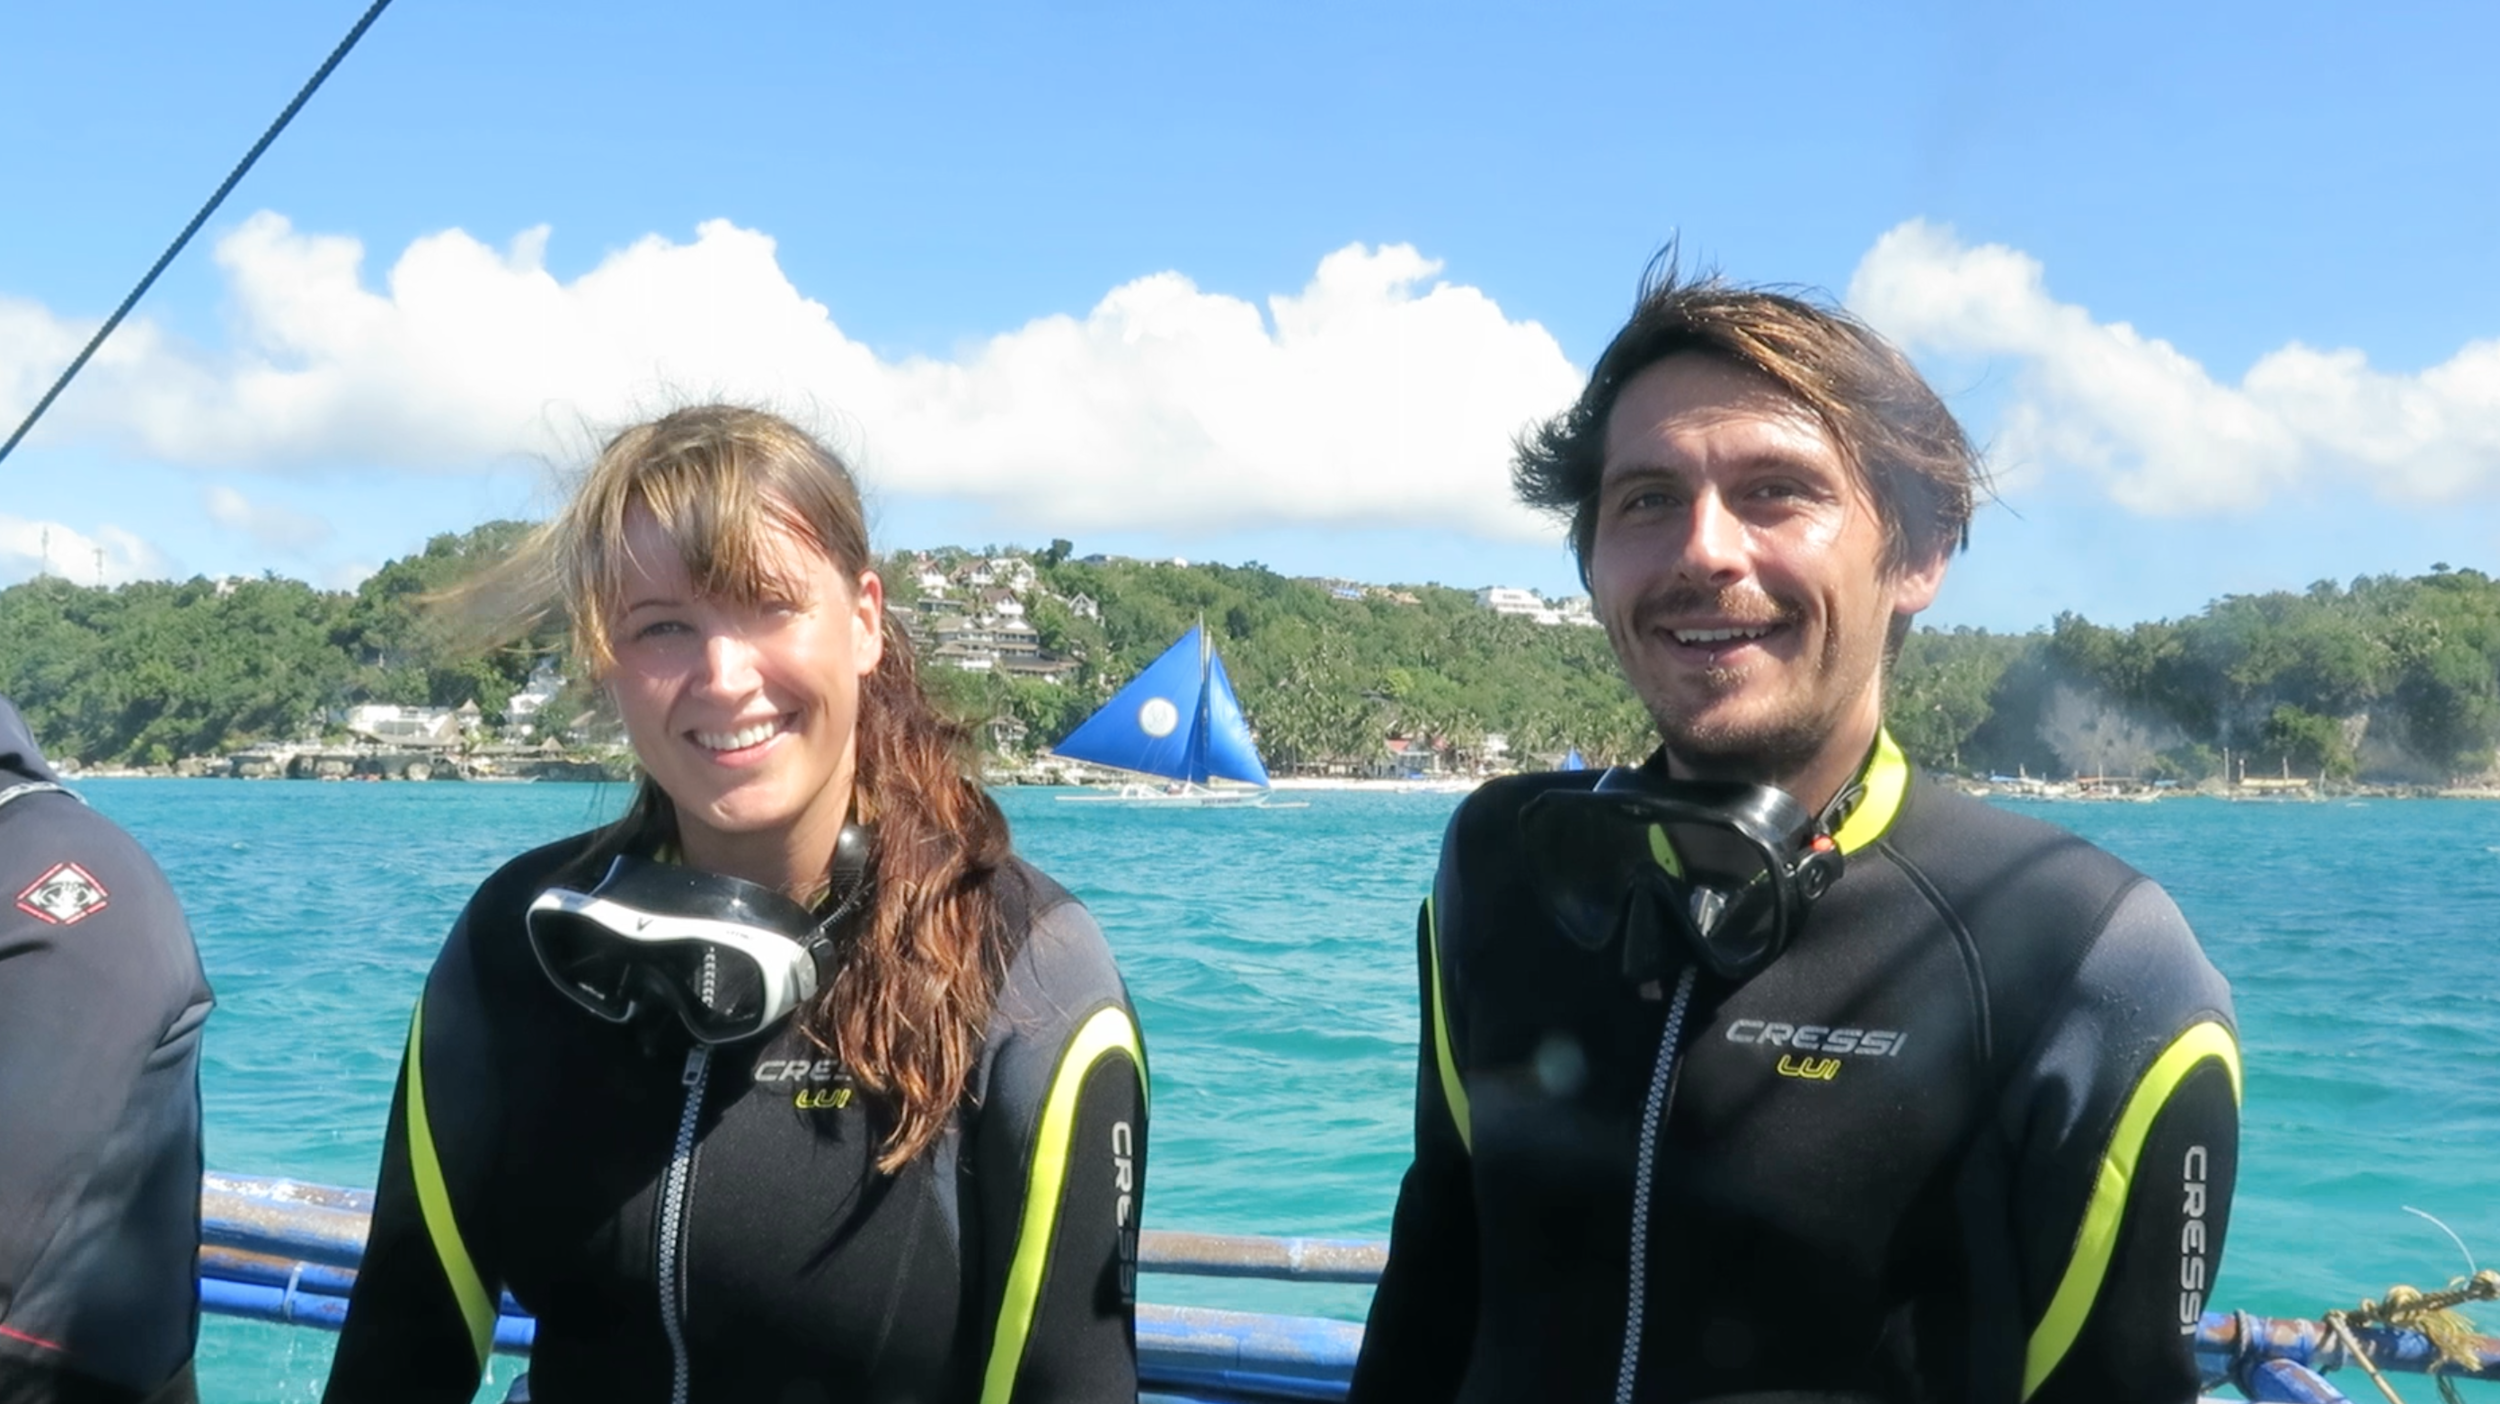 January 2016. Went scuba diving with the Philippines with Jeremiah, who I met three months earlier in Bali,here not yet suspecting how insane our dive master was. In September he's finally coming to visit in Berlin!